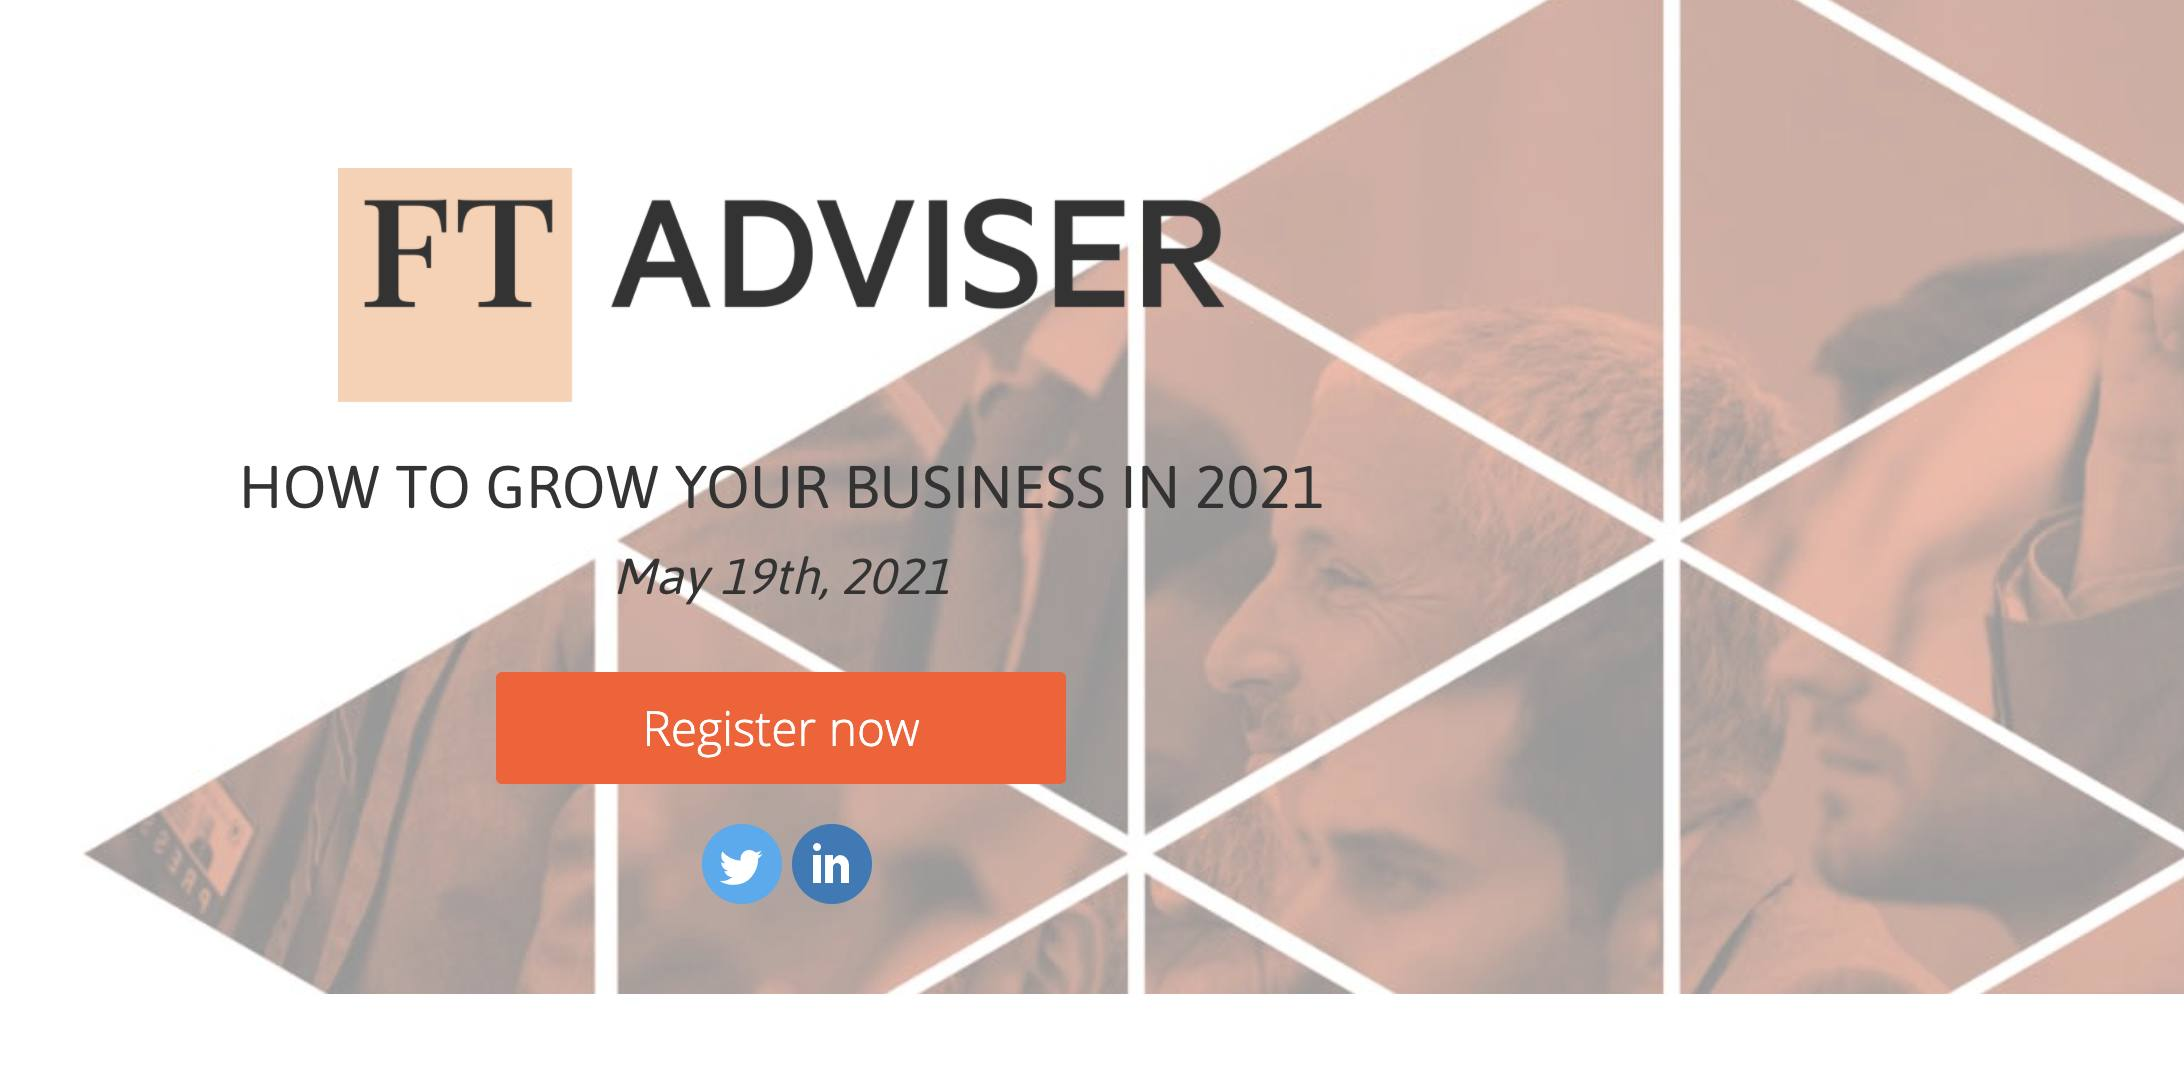 Register now: How to grow your business in 2021